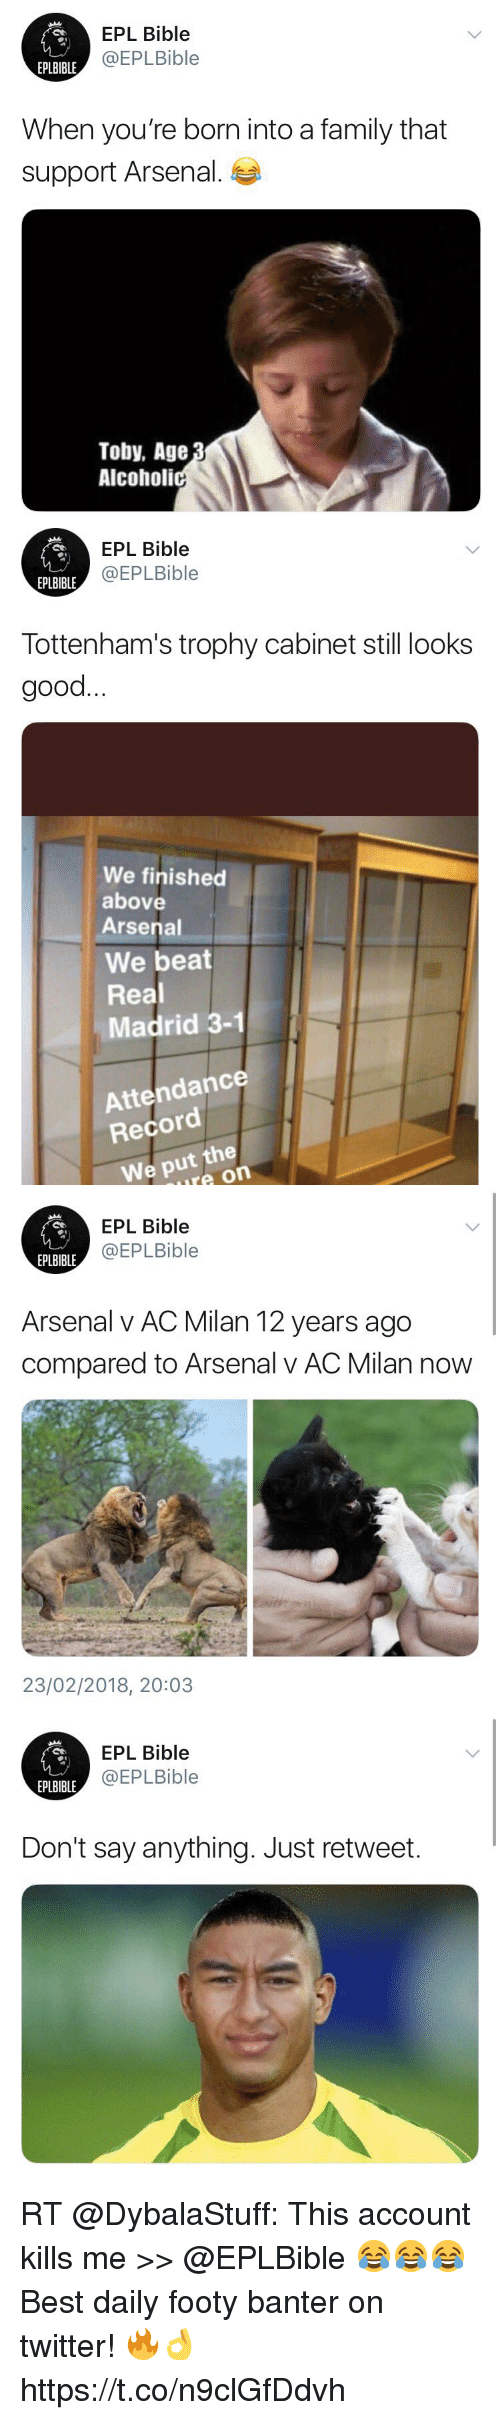 Arsenal, Family, and Memes: EPL Bible  @EPLBible  EPLBIBLE  When you're born into a family that  support Arsenal.  Toby, Age  Alcoholi   EPL Bible  @EPLBible  EPLBIBLE  Tottenham's trophy cabinet still looks  good  We finished  above  Arsenal  We beat  Real  Madrid 3-1  Attendance  Record  We put the  ure on   EPL Bible  @EPLBible  EPLBIBLE  Arsenal v AC Milan 12 years ago  compared to Arsenal v AC Milan now  23/02/2018, 20:03   EPL Bible  @EPLBible  EPLBIBLE  Don't say anything. Just retweet. RT @DybalaStuff: This account kills me >> @EPLBible 😂😂😂   Best daily footy banter on twitter! 🔥👌 https://t.co/n9clGfDdvh